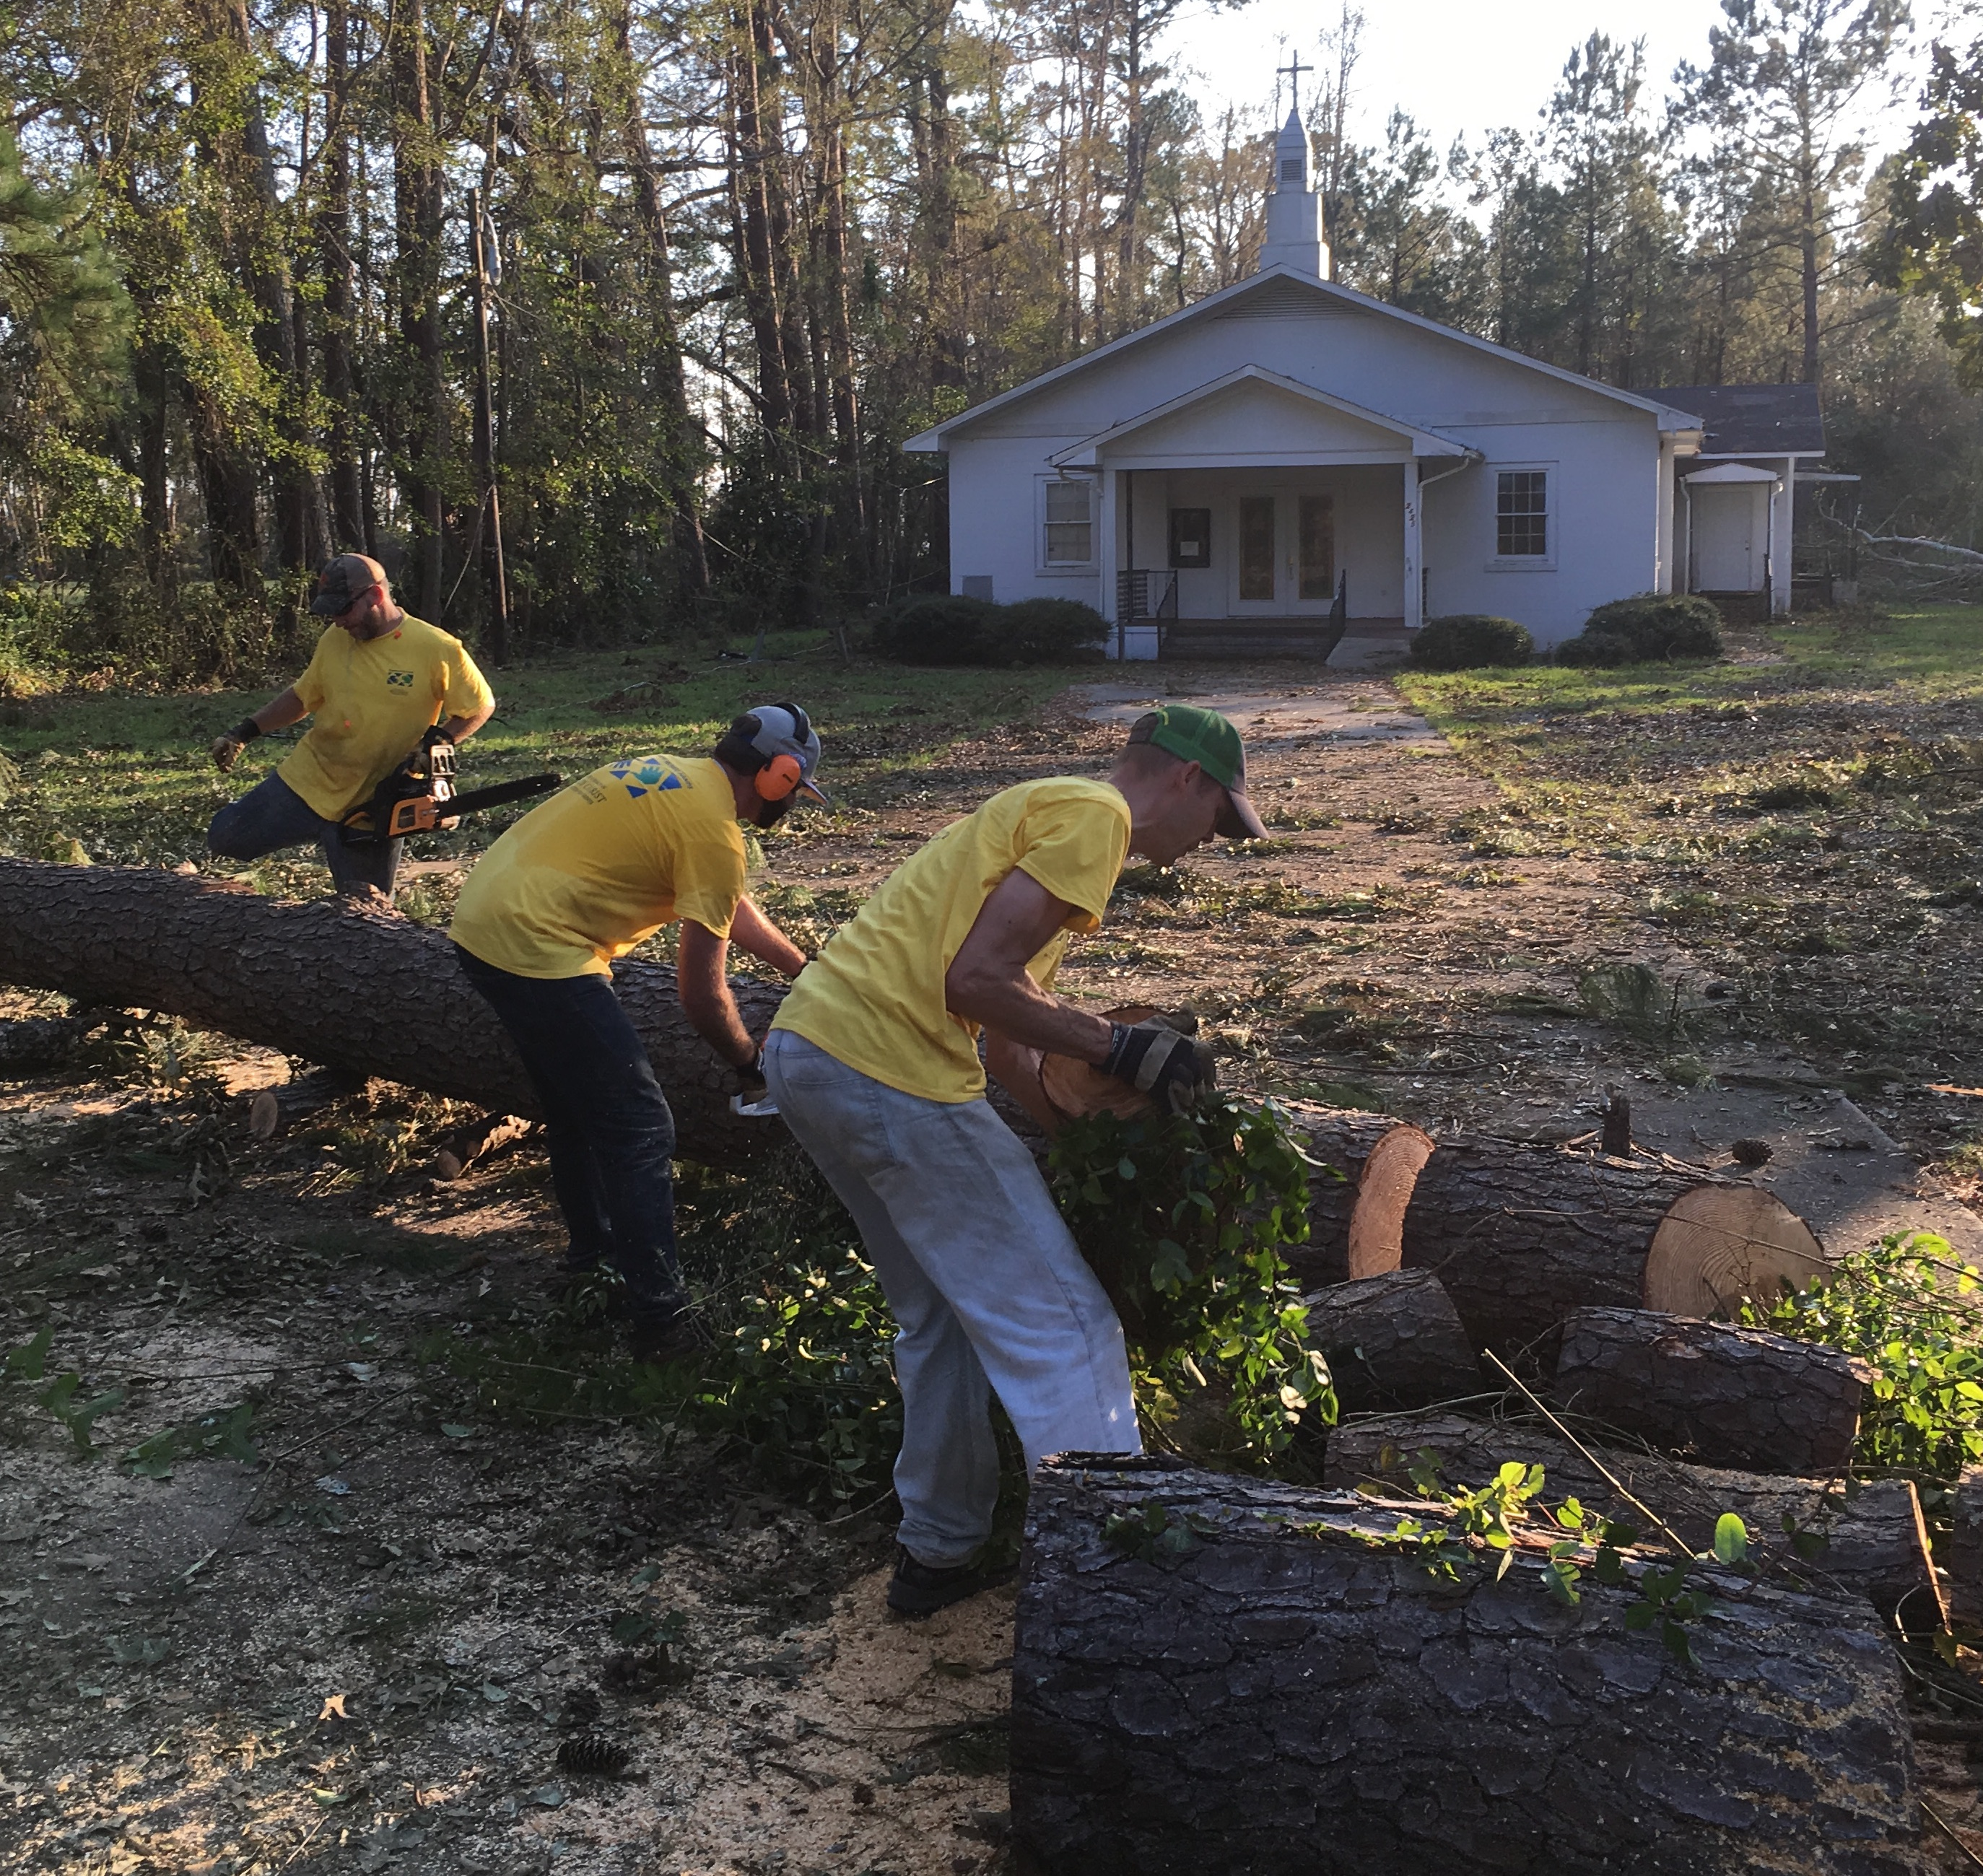 A Latter-day Saint Helping Hands work crew chops up a fallen tree outside a local church in Wilmington, North Carolina.